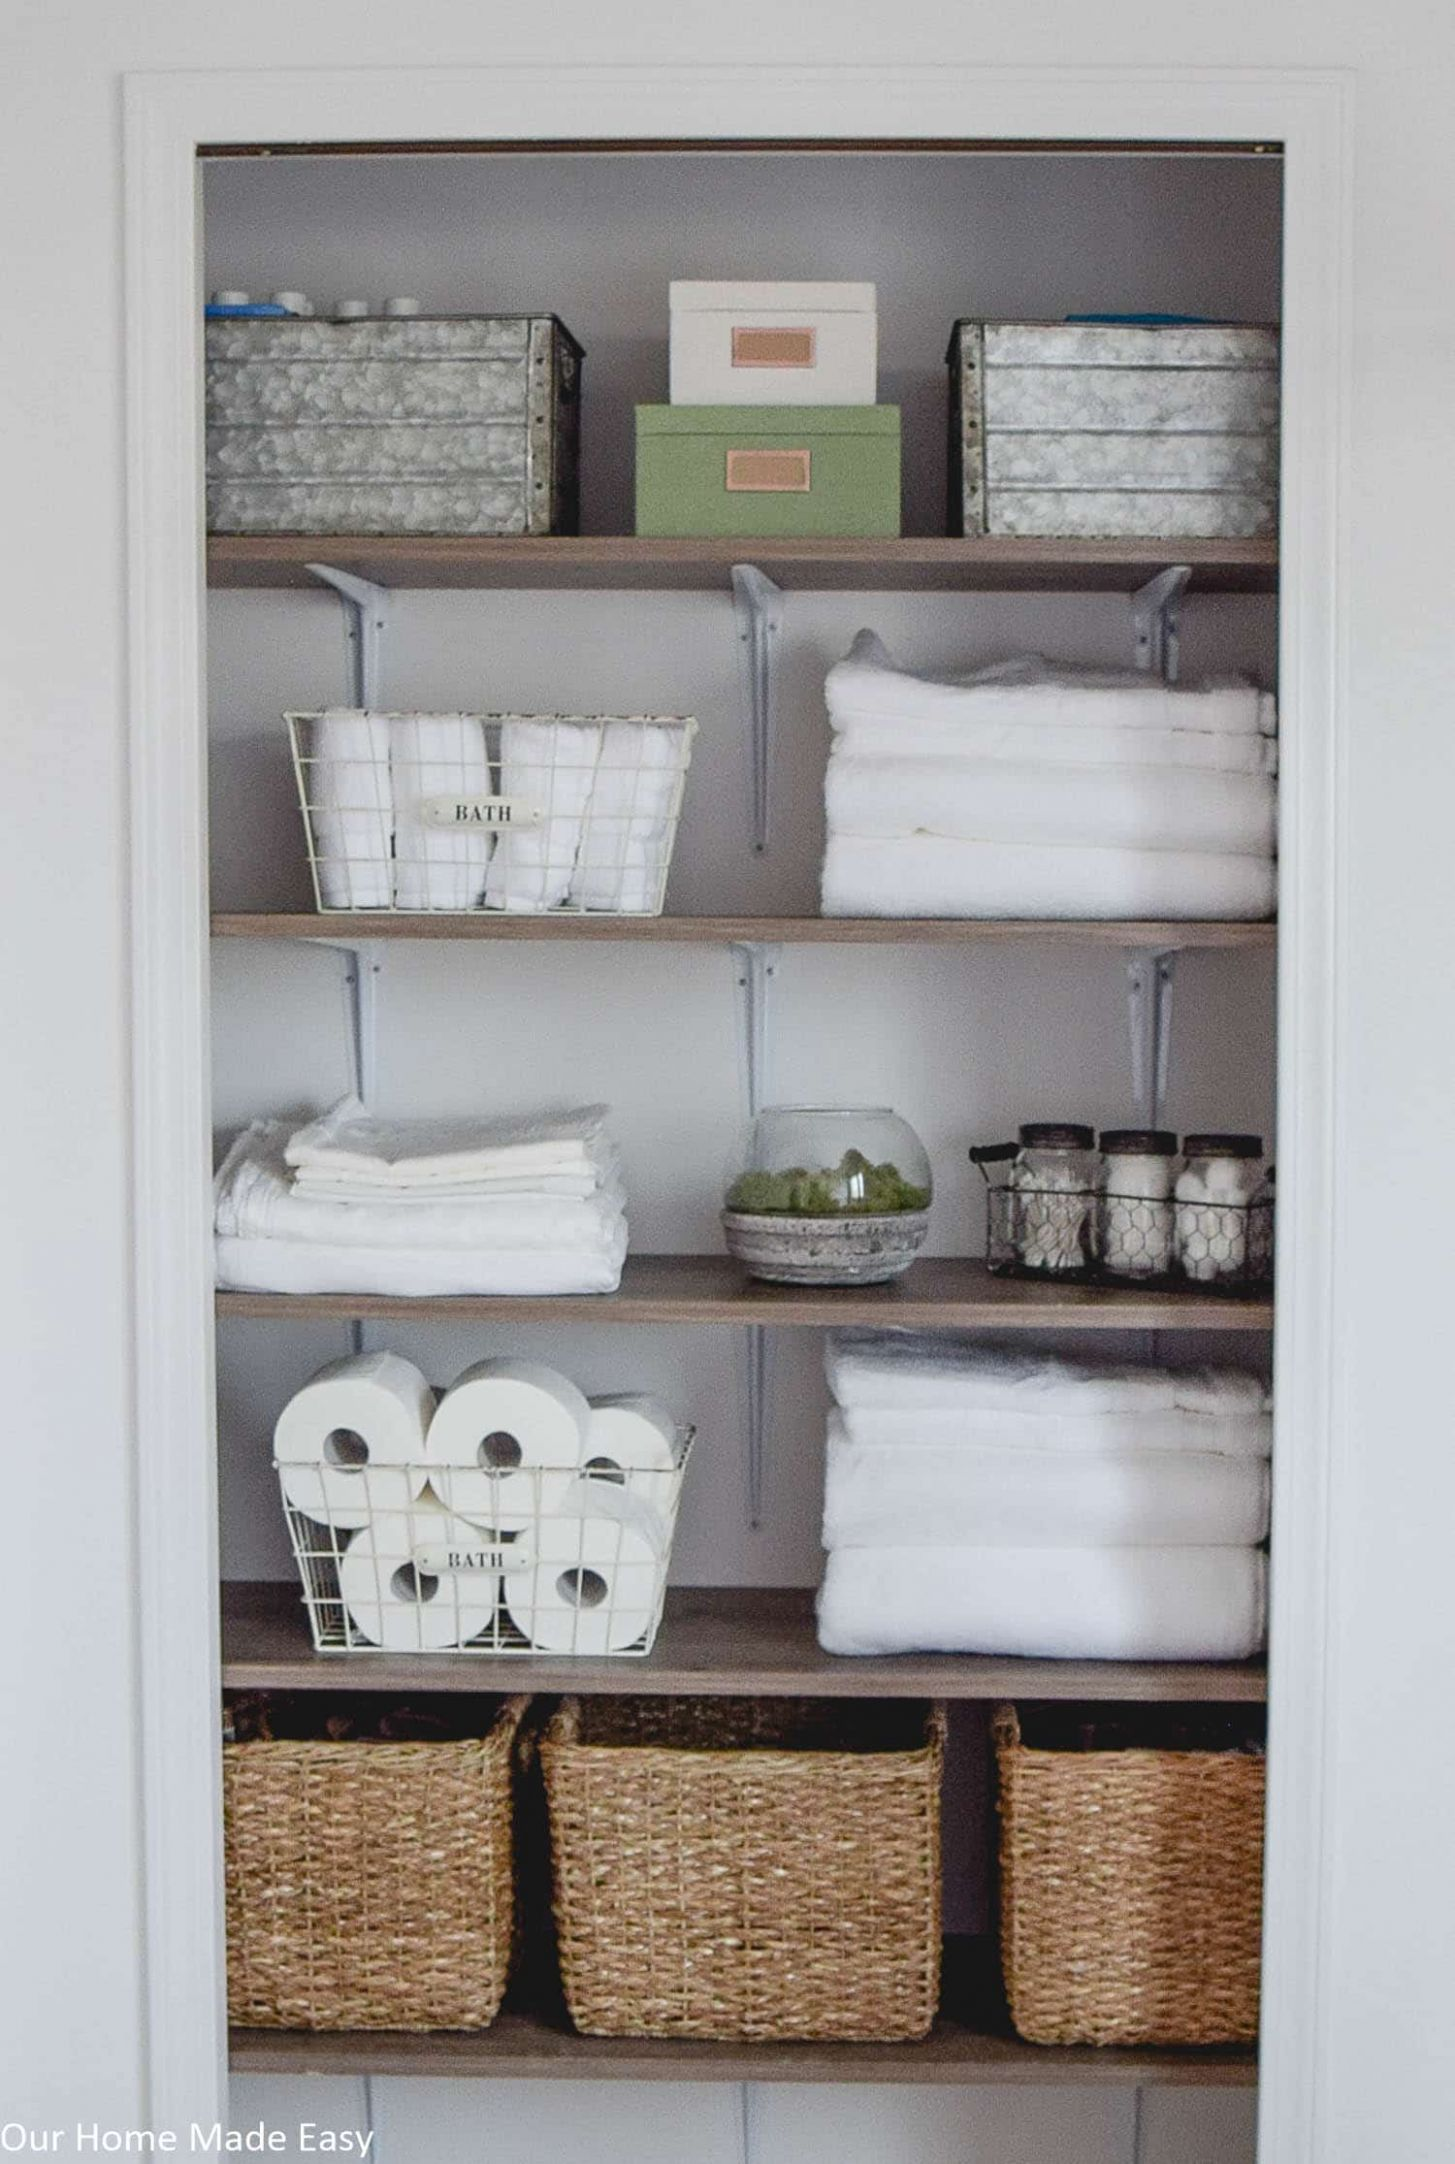 Bathroom Linen Closet Reveal – Our Home Made Easy - closet ideas bathroom